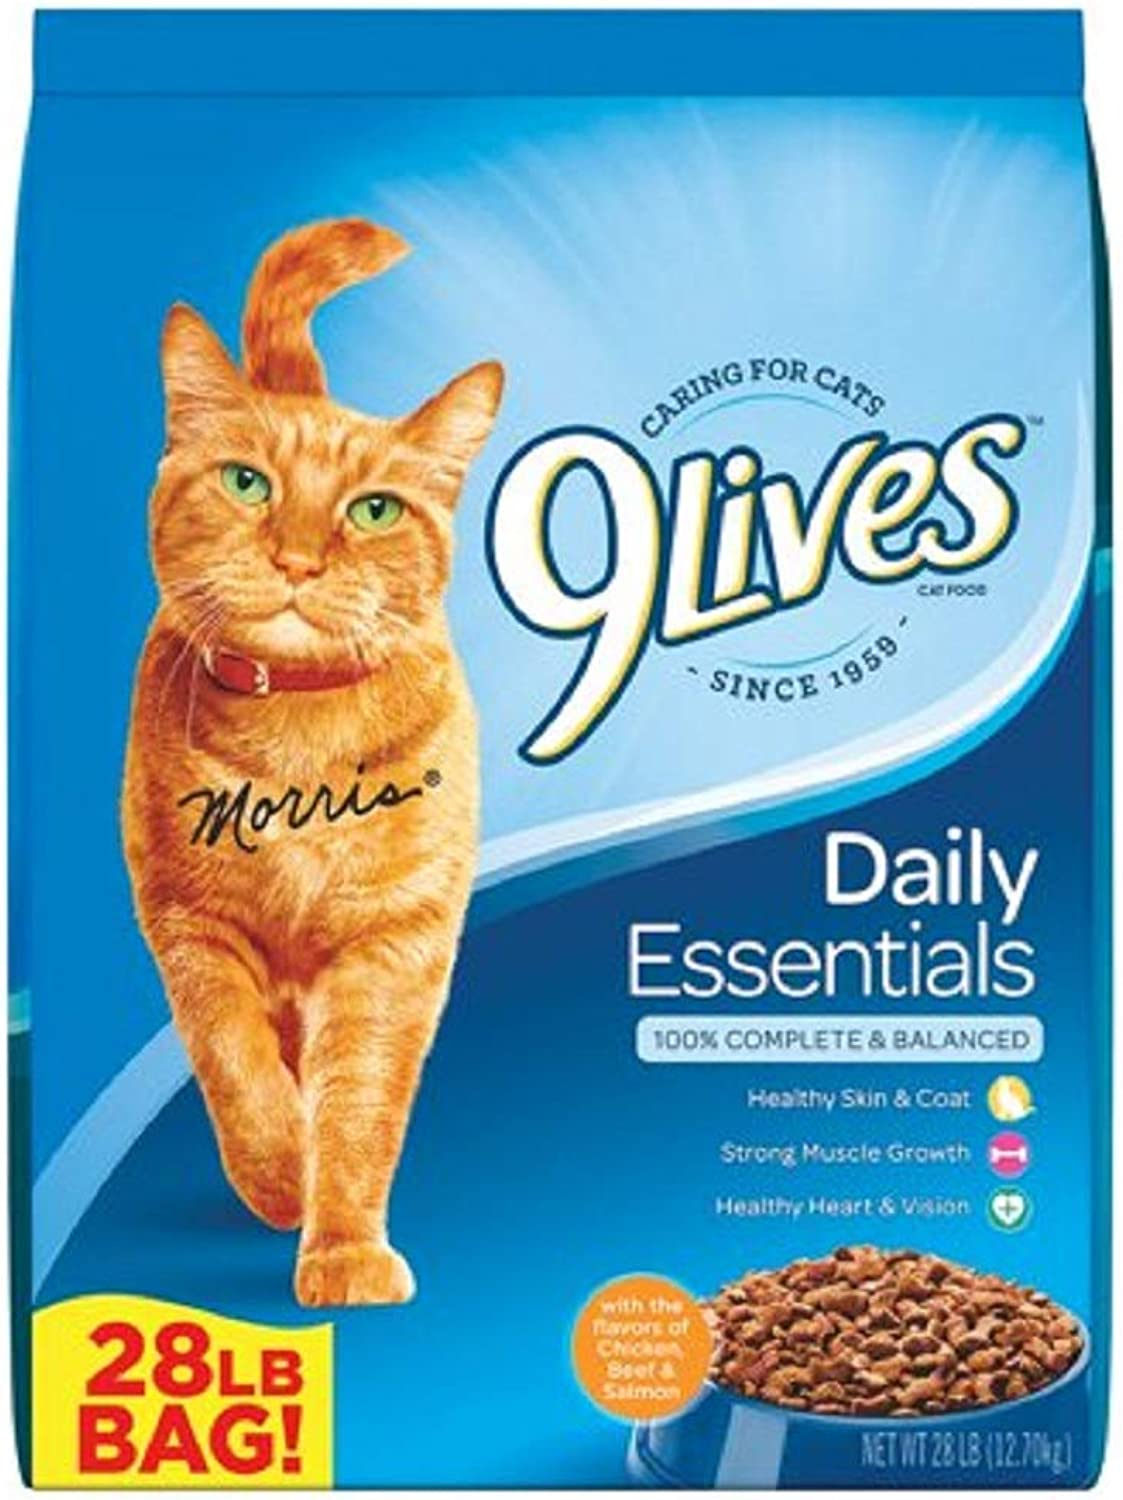 PACK OF 2  9 Lives Daily Essentials Dry Cat Food, 28 lb